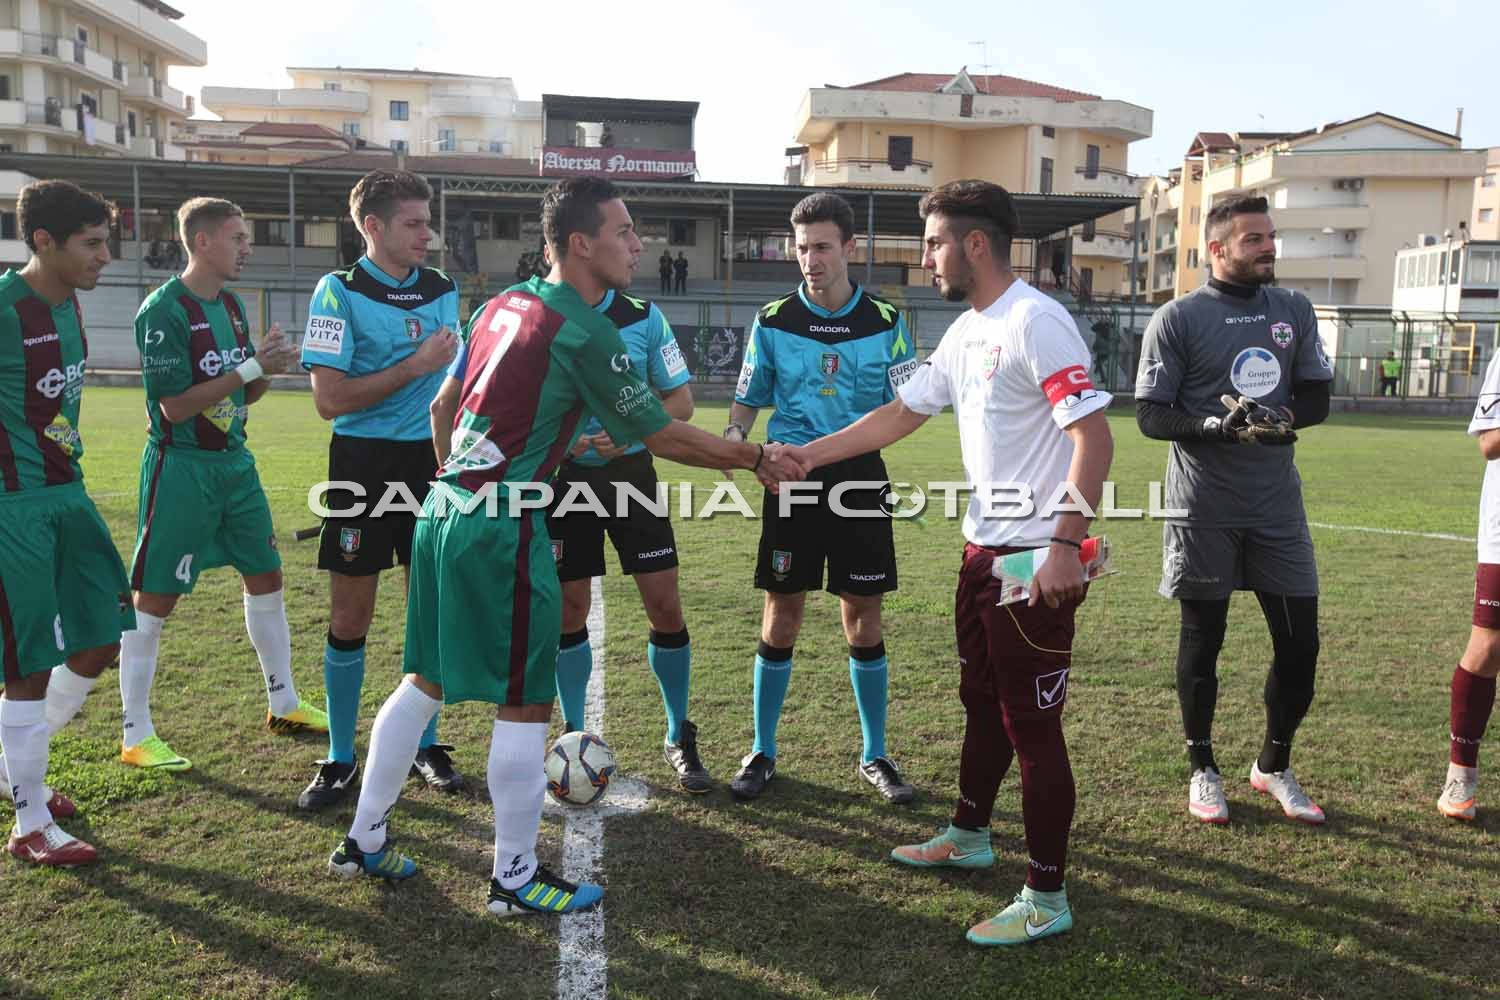 FOTO | Serie D Girone I: Aversa Normanna-Sancataldese 0-0